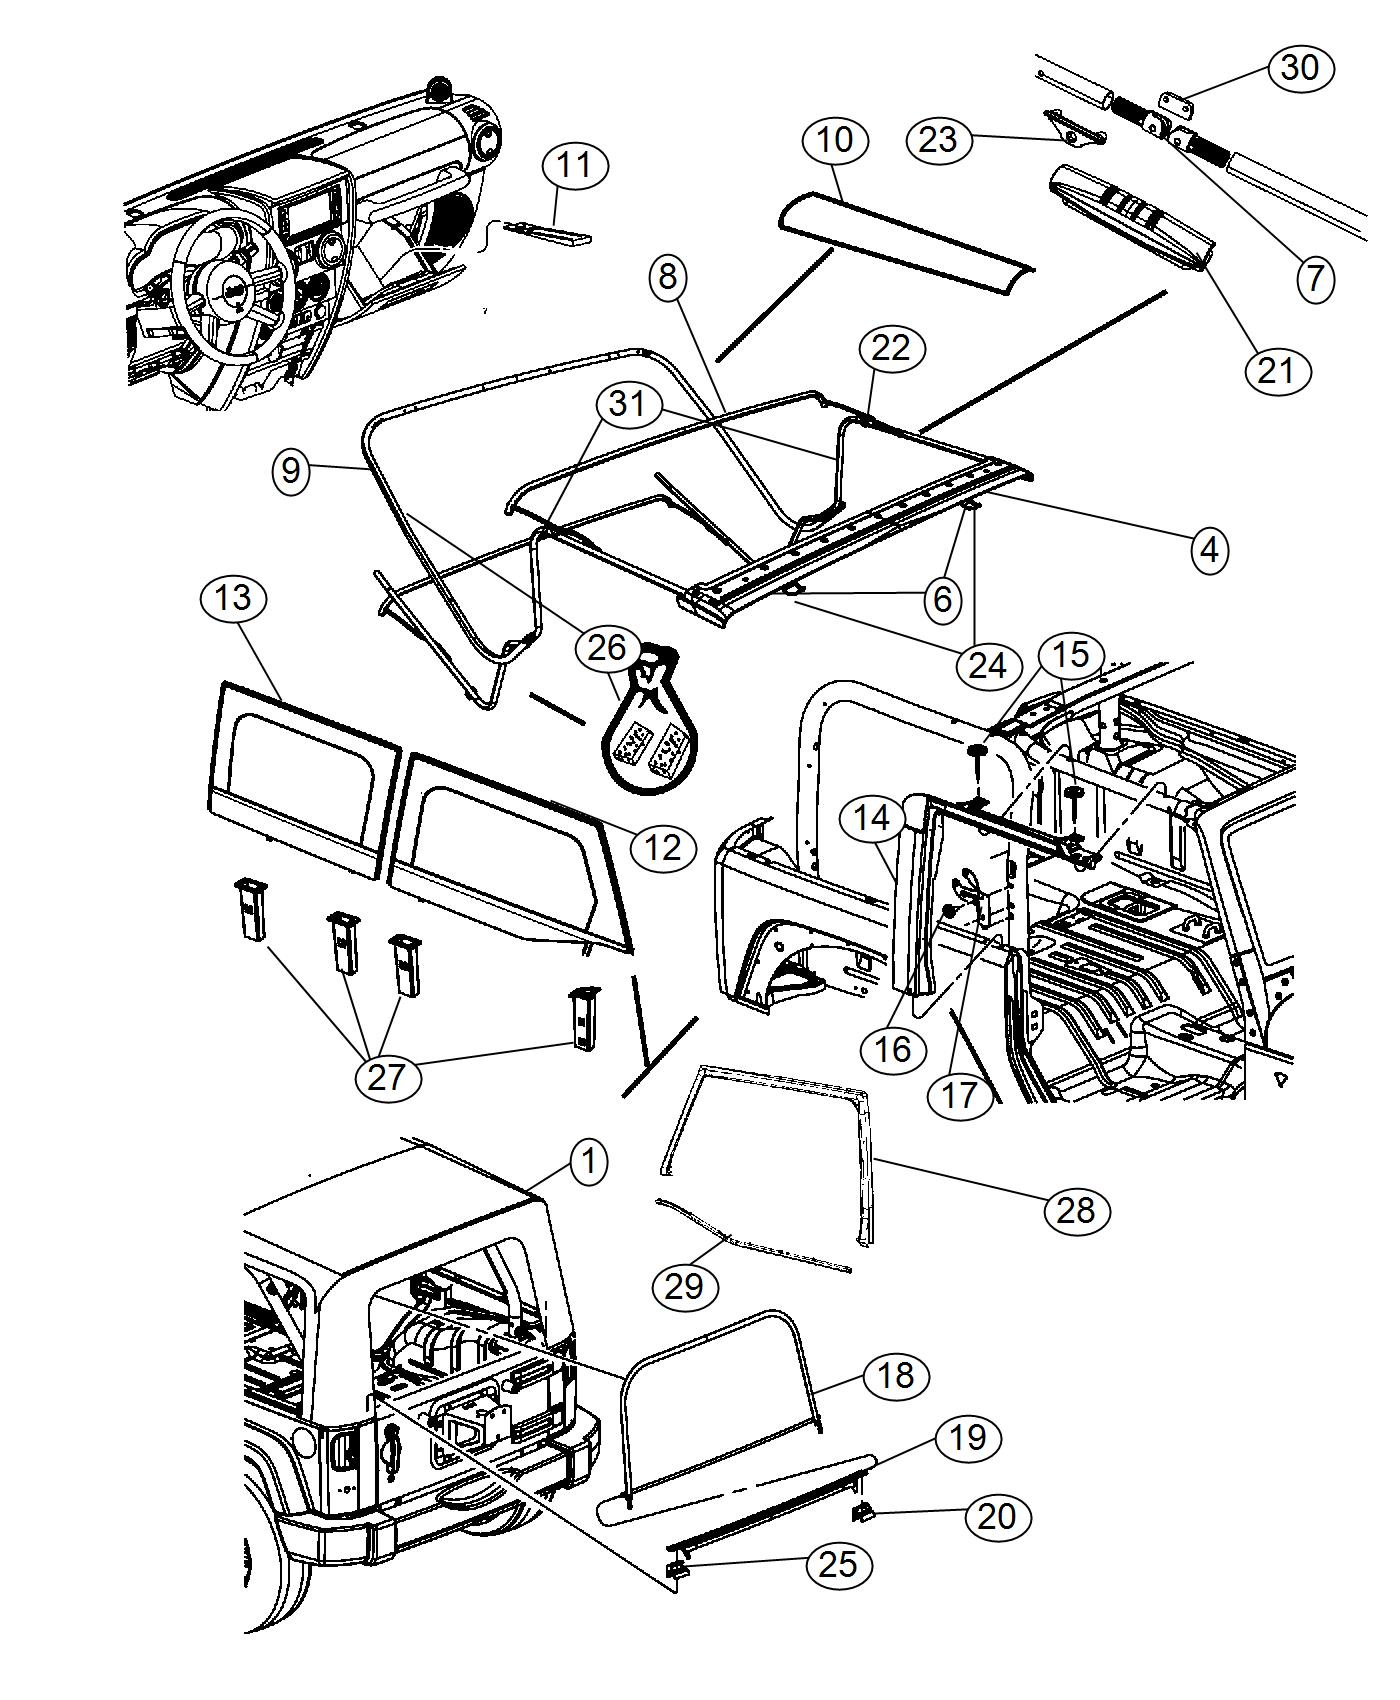 Jeep Wrangler Bracket Used For Soft Top Bow 1 And 3